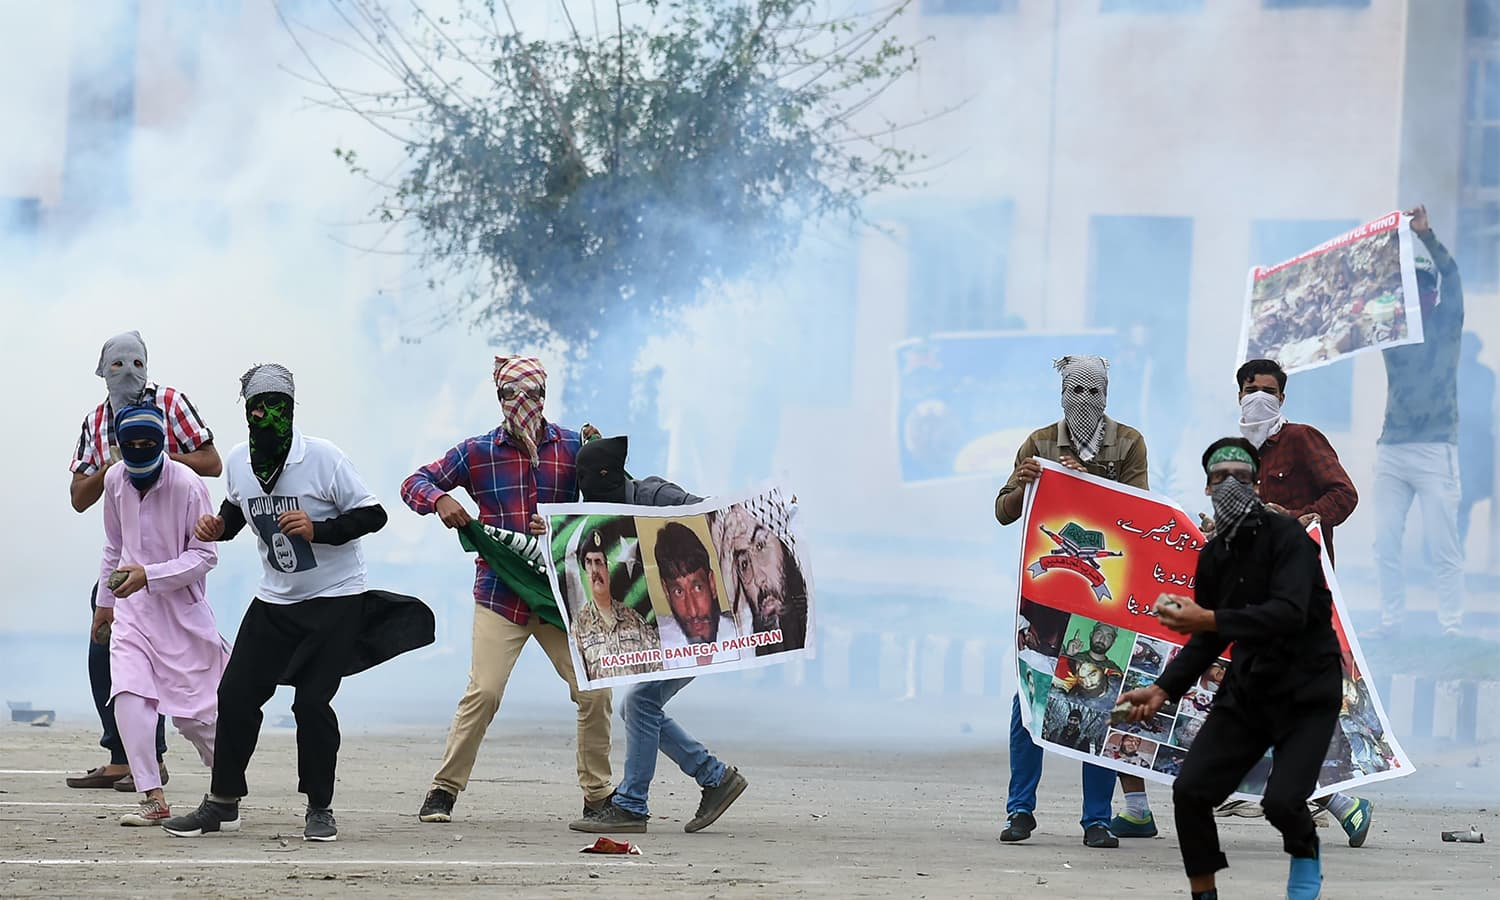 Kashmiri youth hold banners and throw stones during clashes between protesters and Indian government forces in downtown Srinagar.—AFP